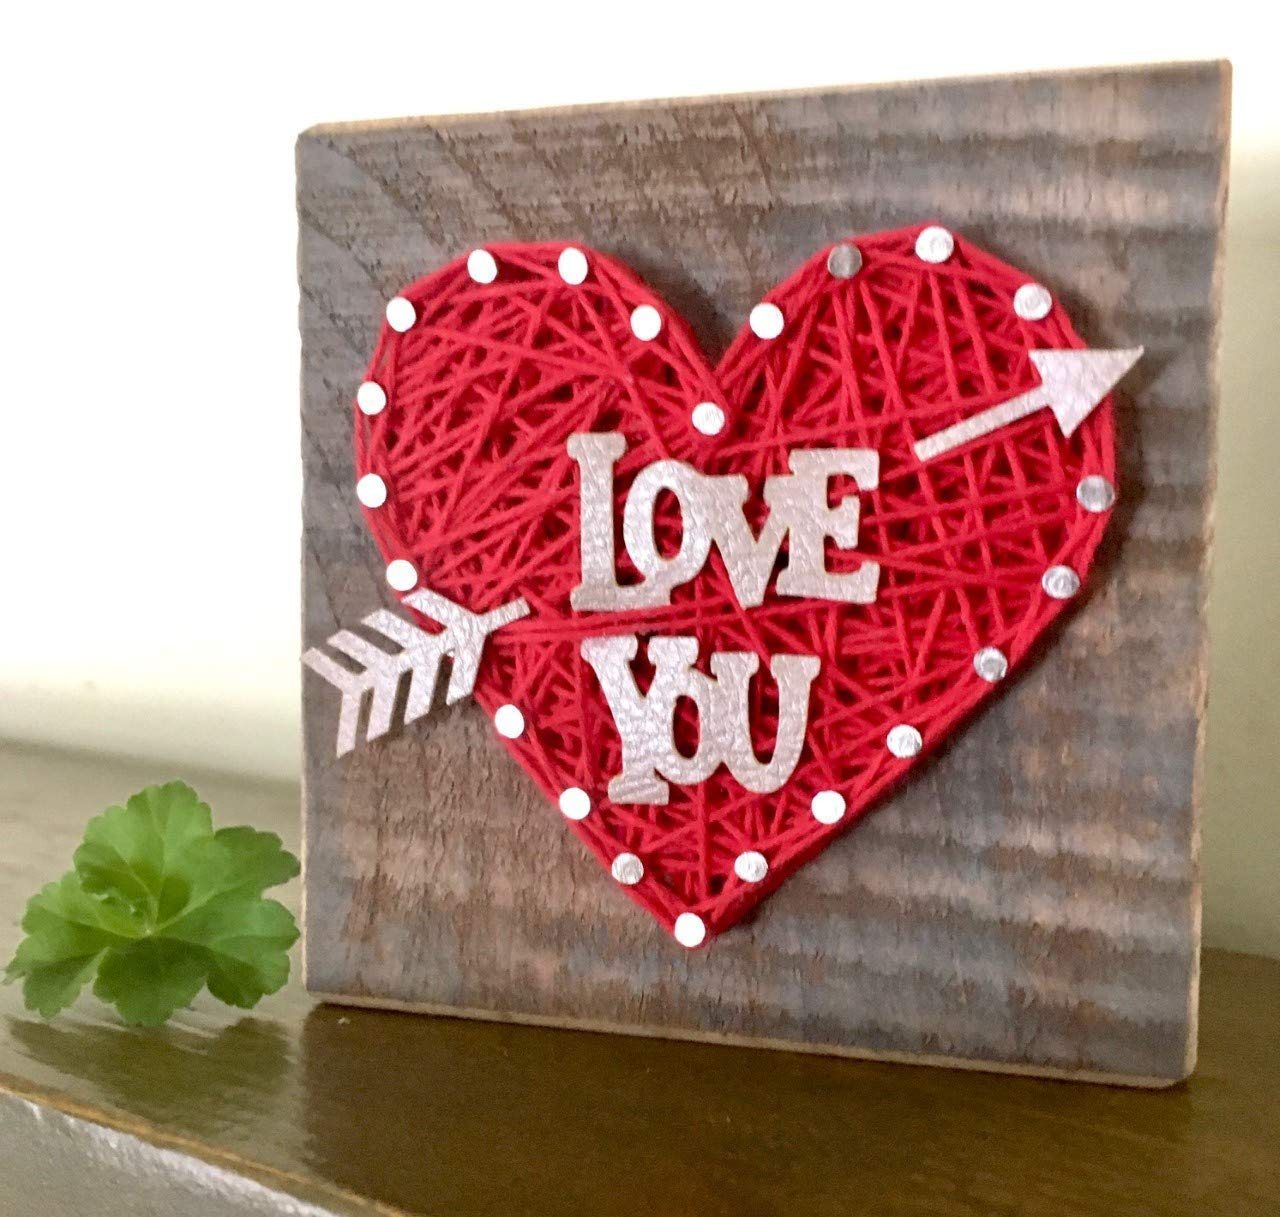 Sweet small Love you heart string art block sign. Heart gift. Perfect for Valentine s Day, Birthdays, Anniversaries or just because gifts. Made in the USA by Nail it Art